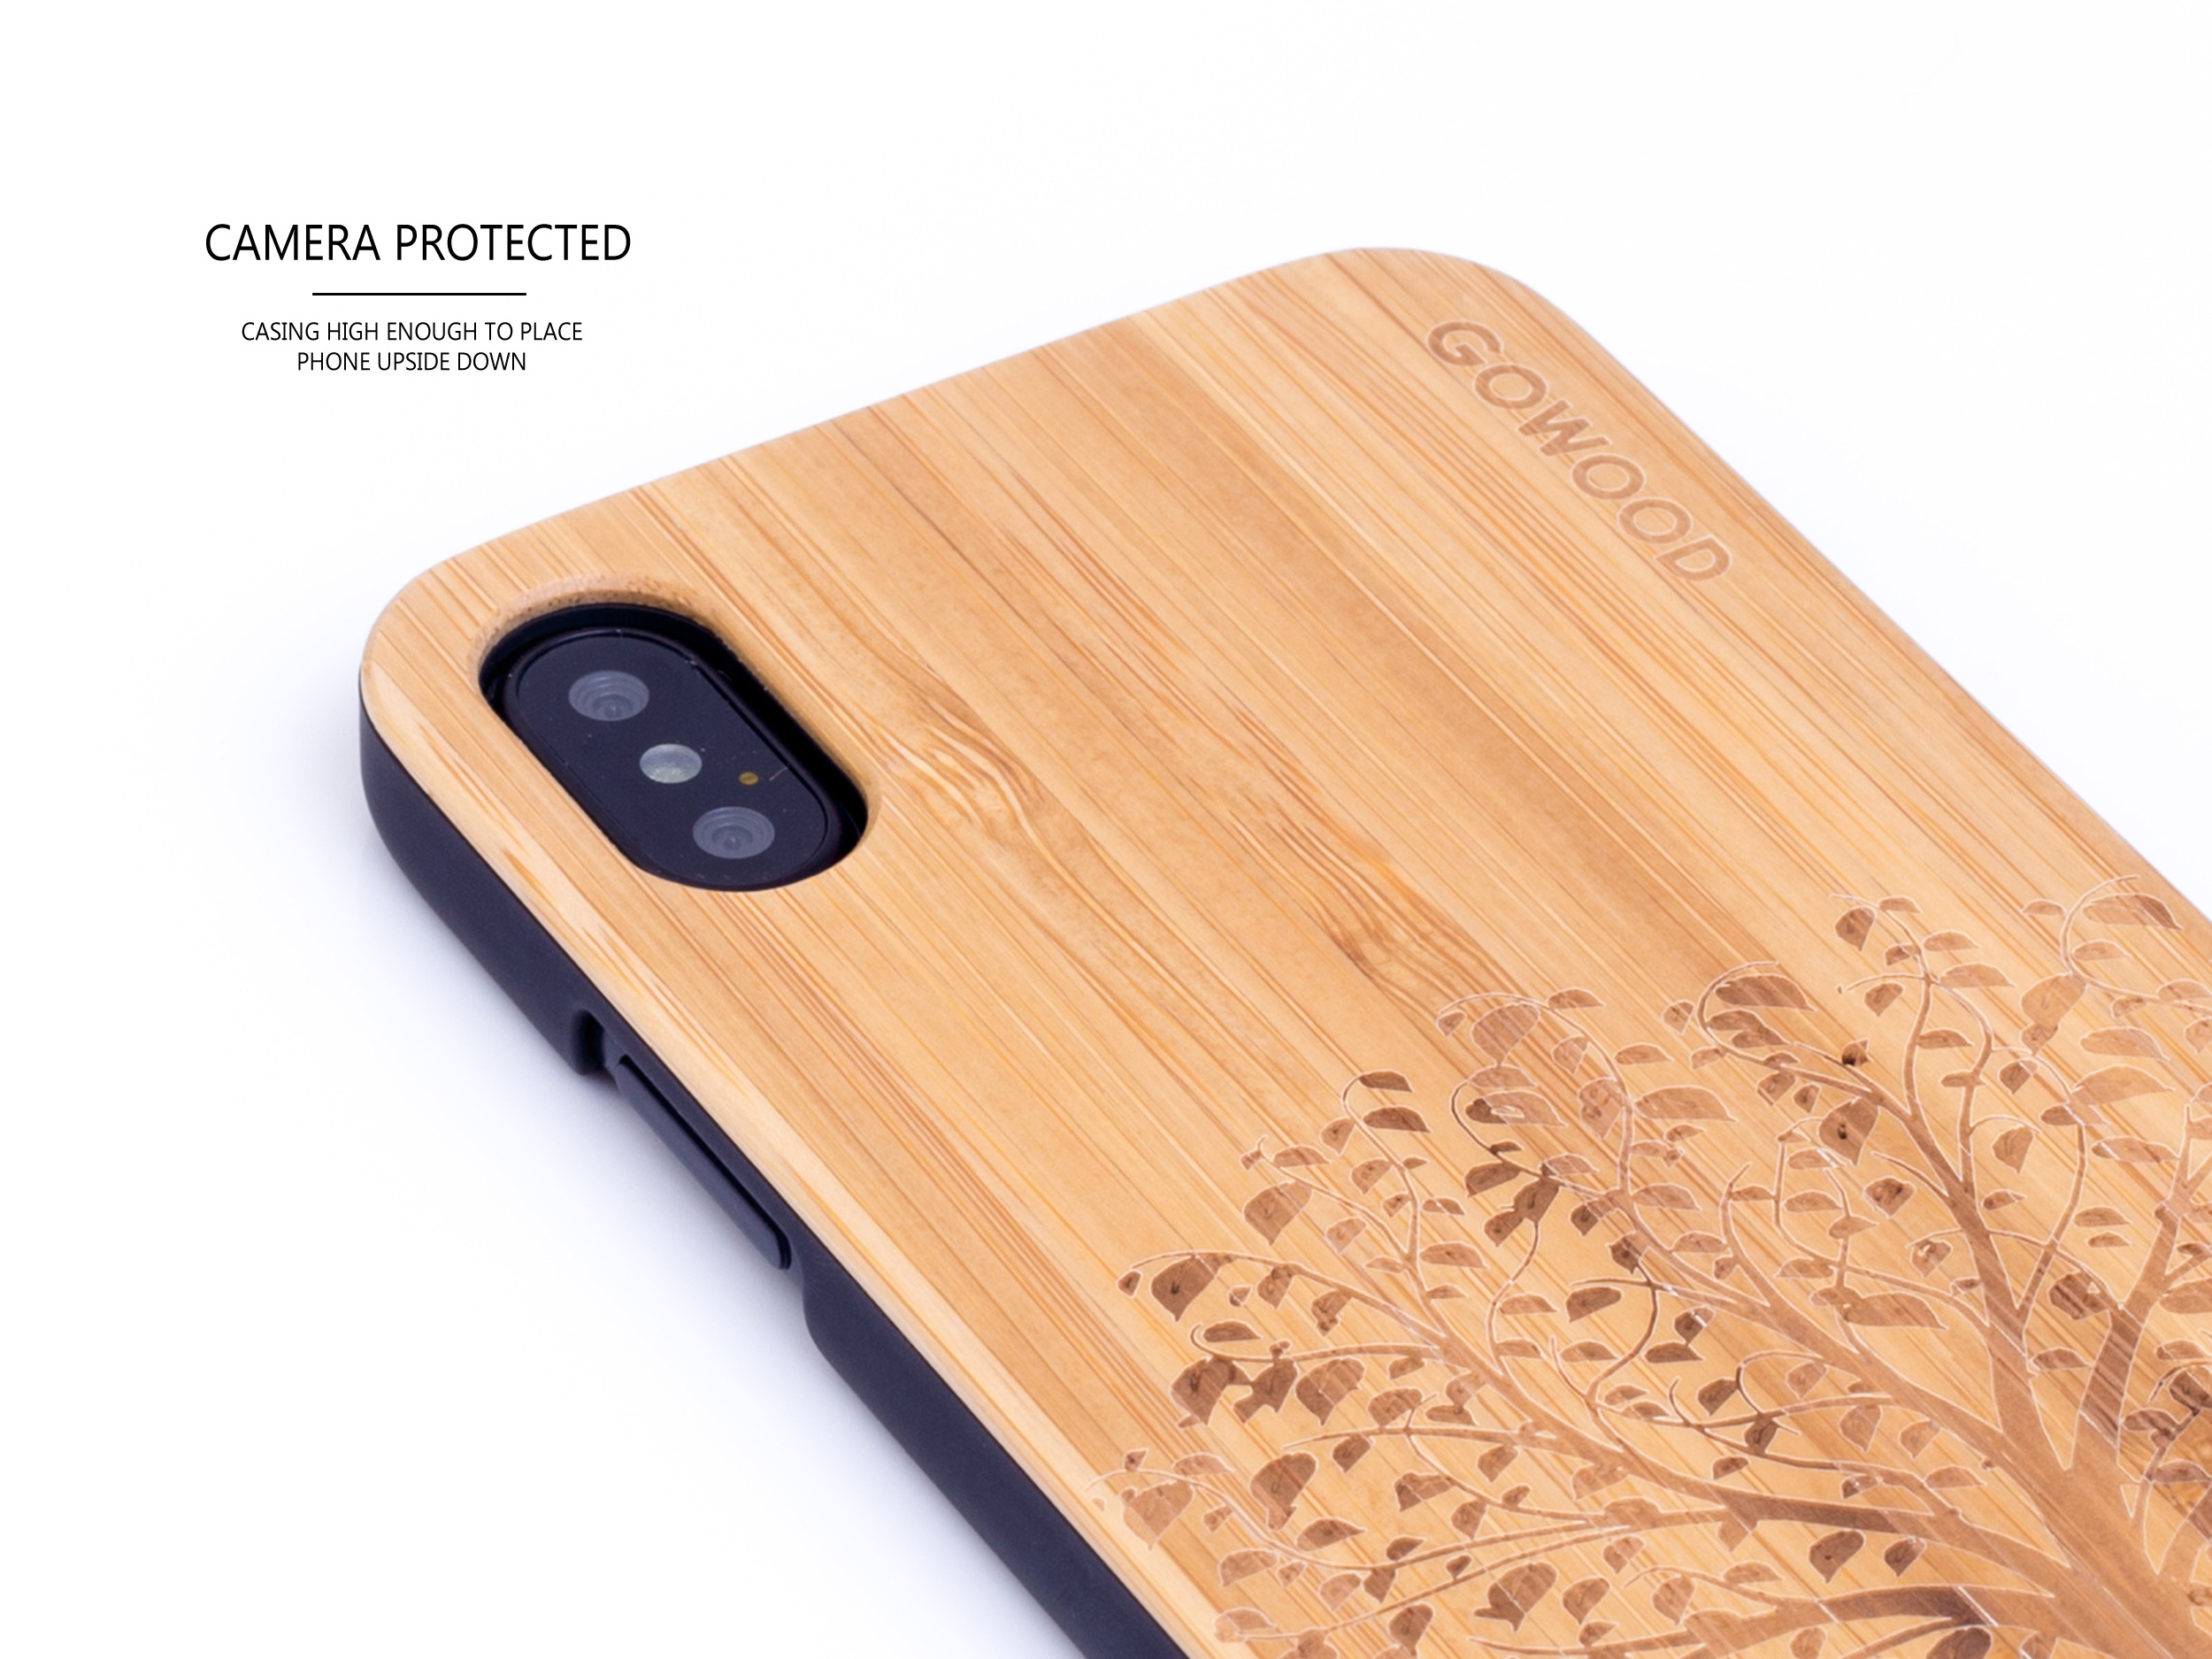 étui iPhone X en bois bambou arbre camera